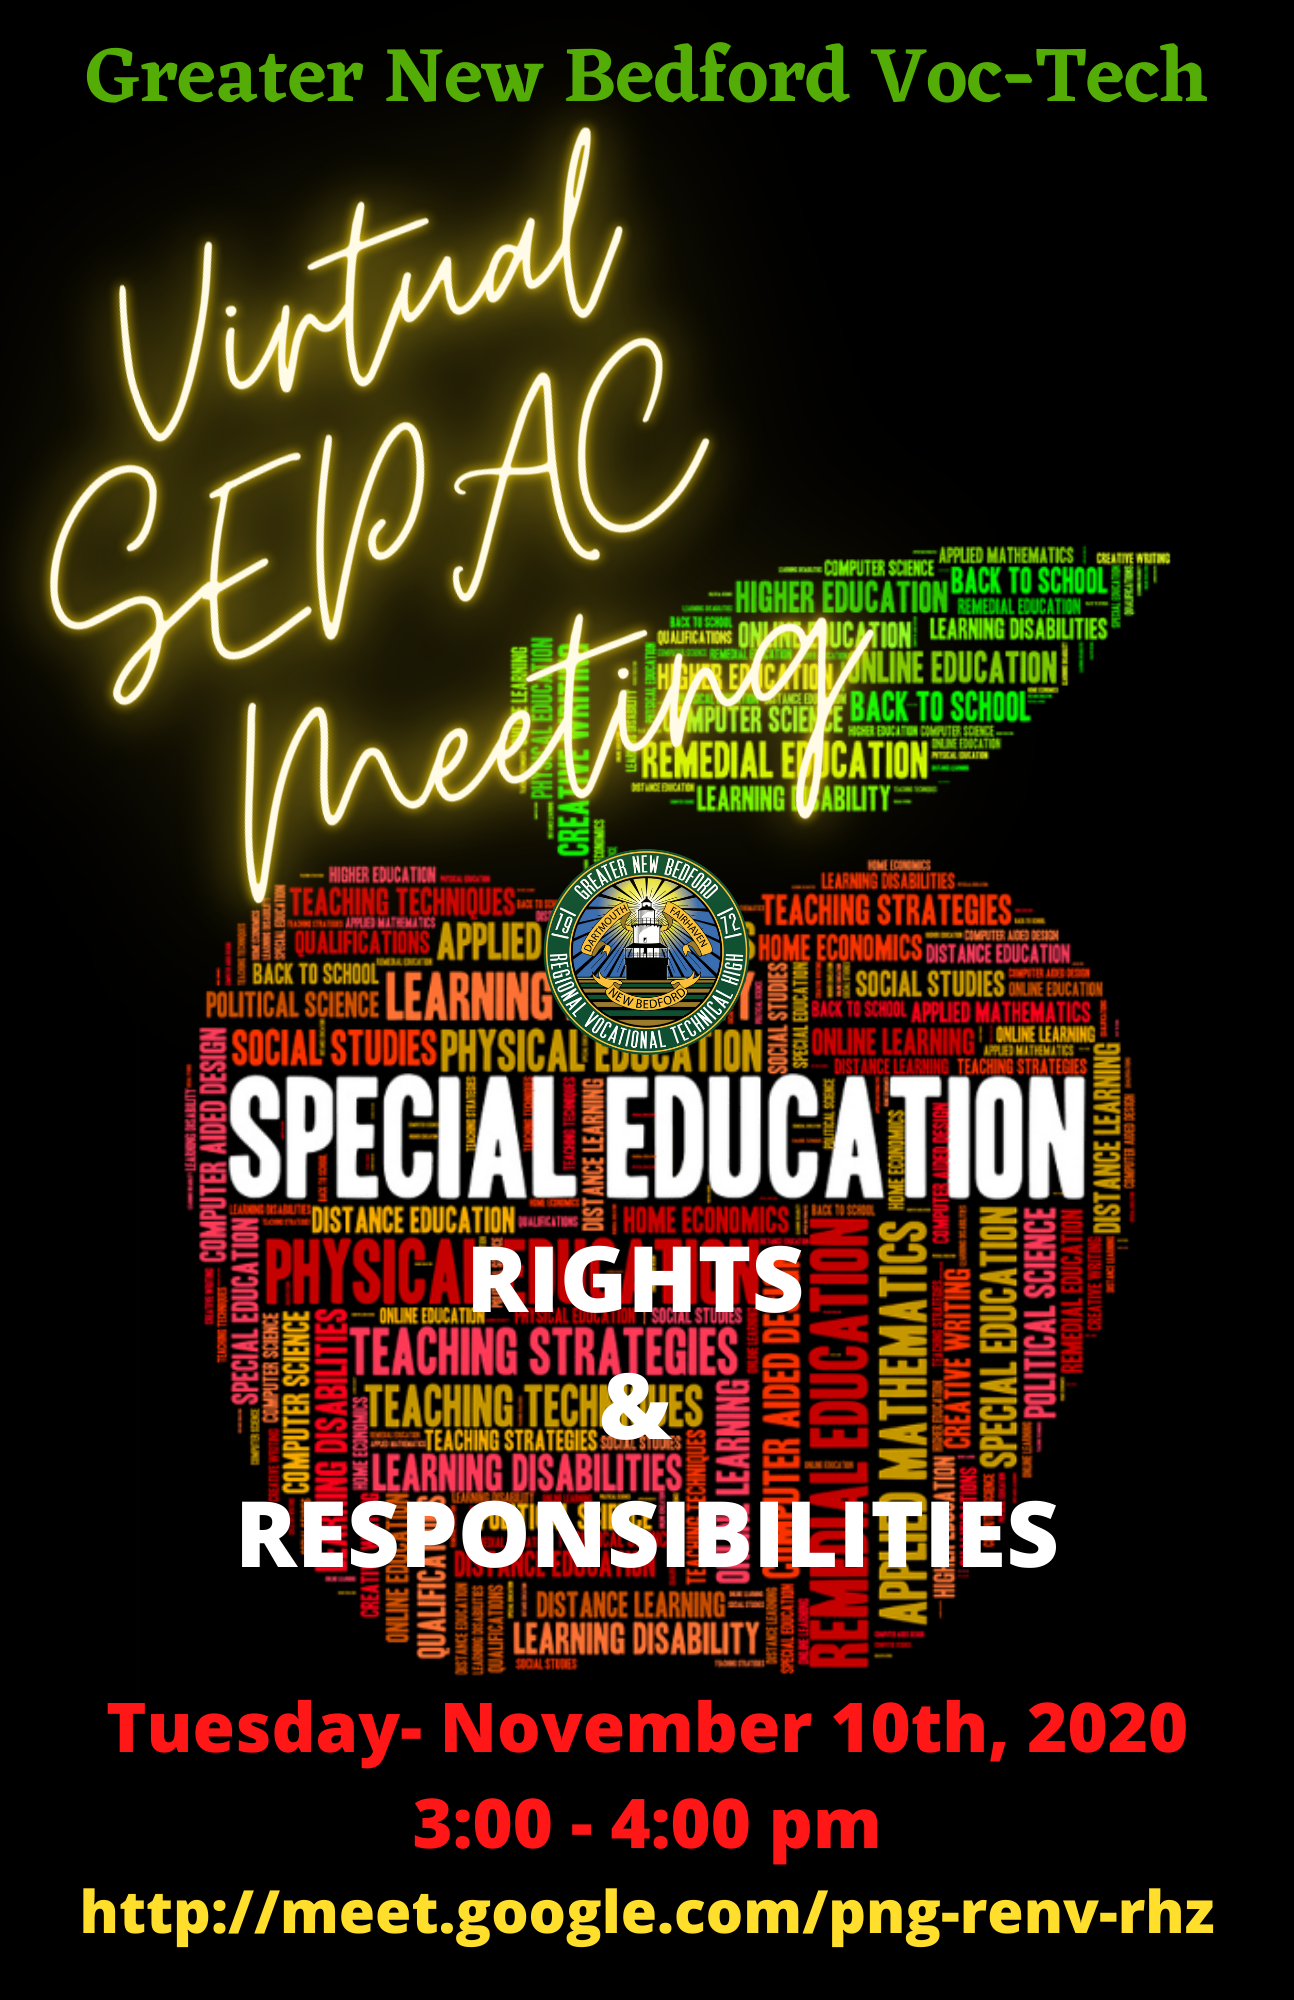 2020 SEPAC MEeting on November 10